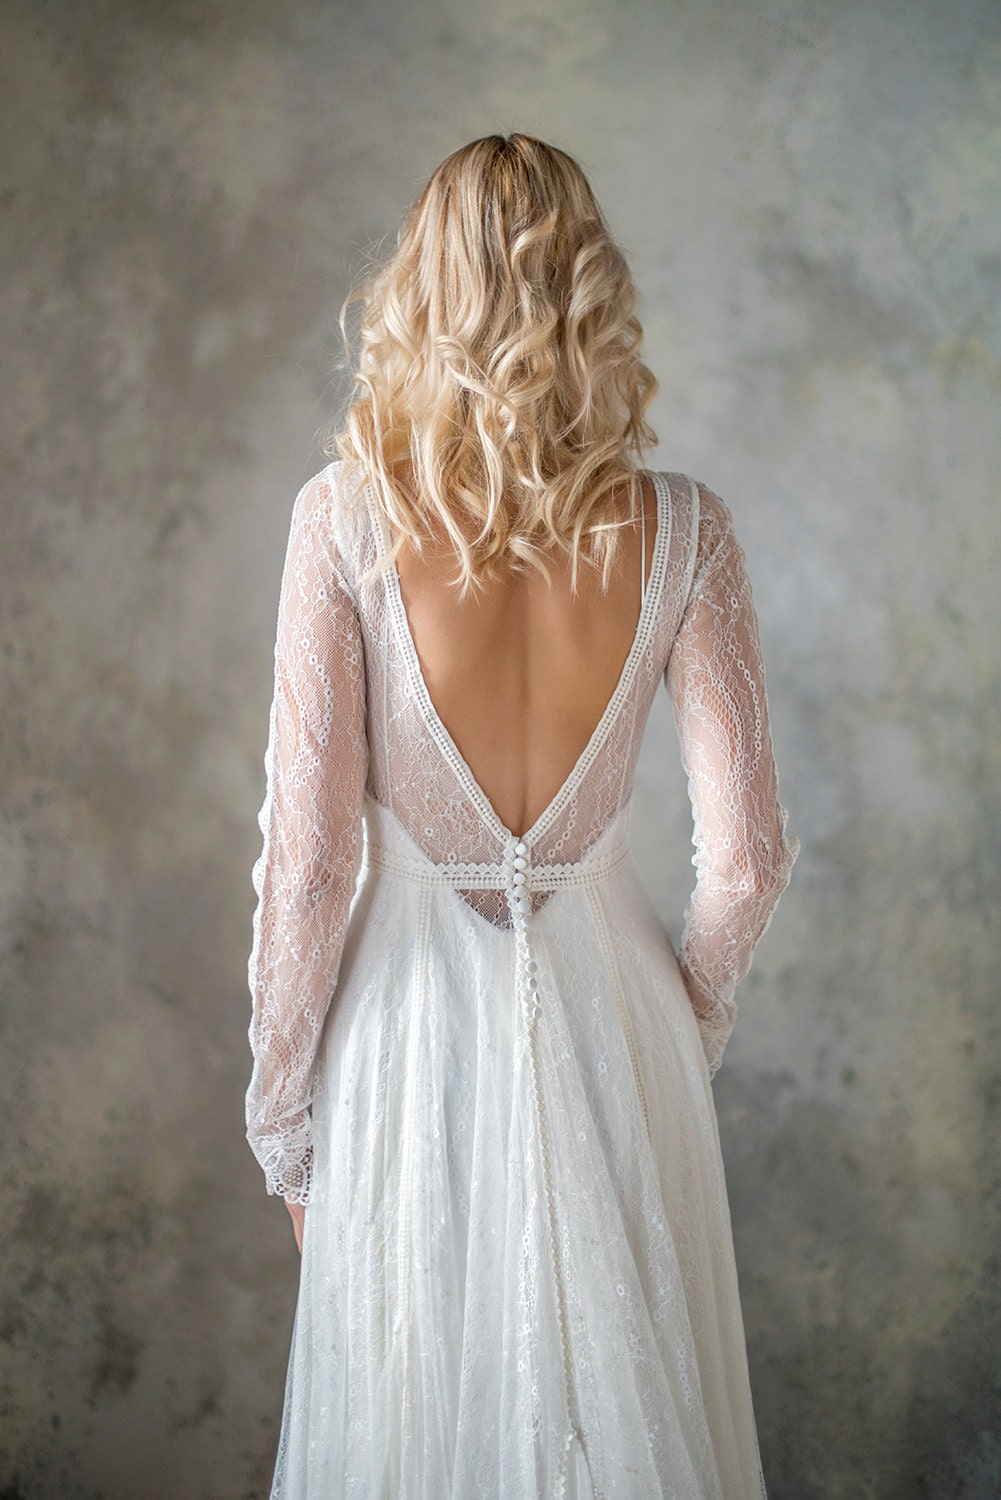 Boho wedding dress buy wedding dresses asian for When to buy wedding dress